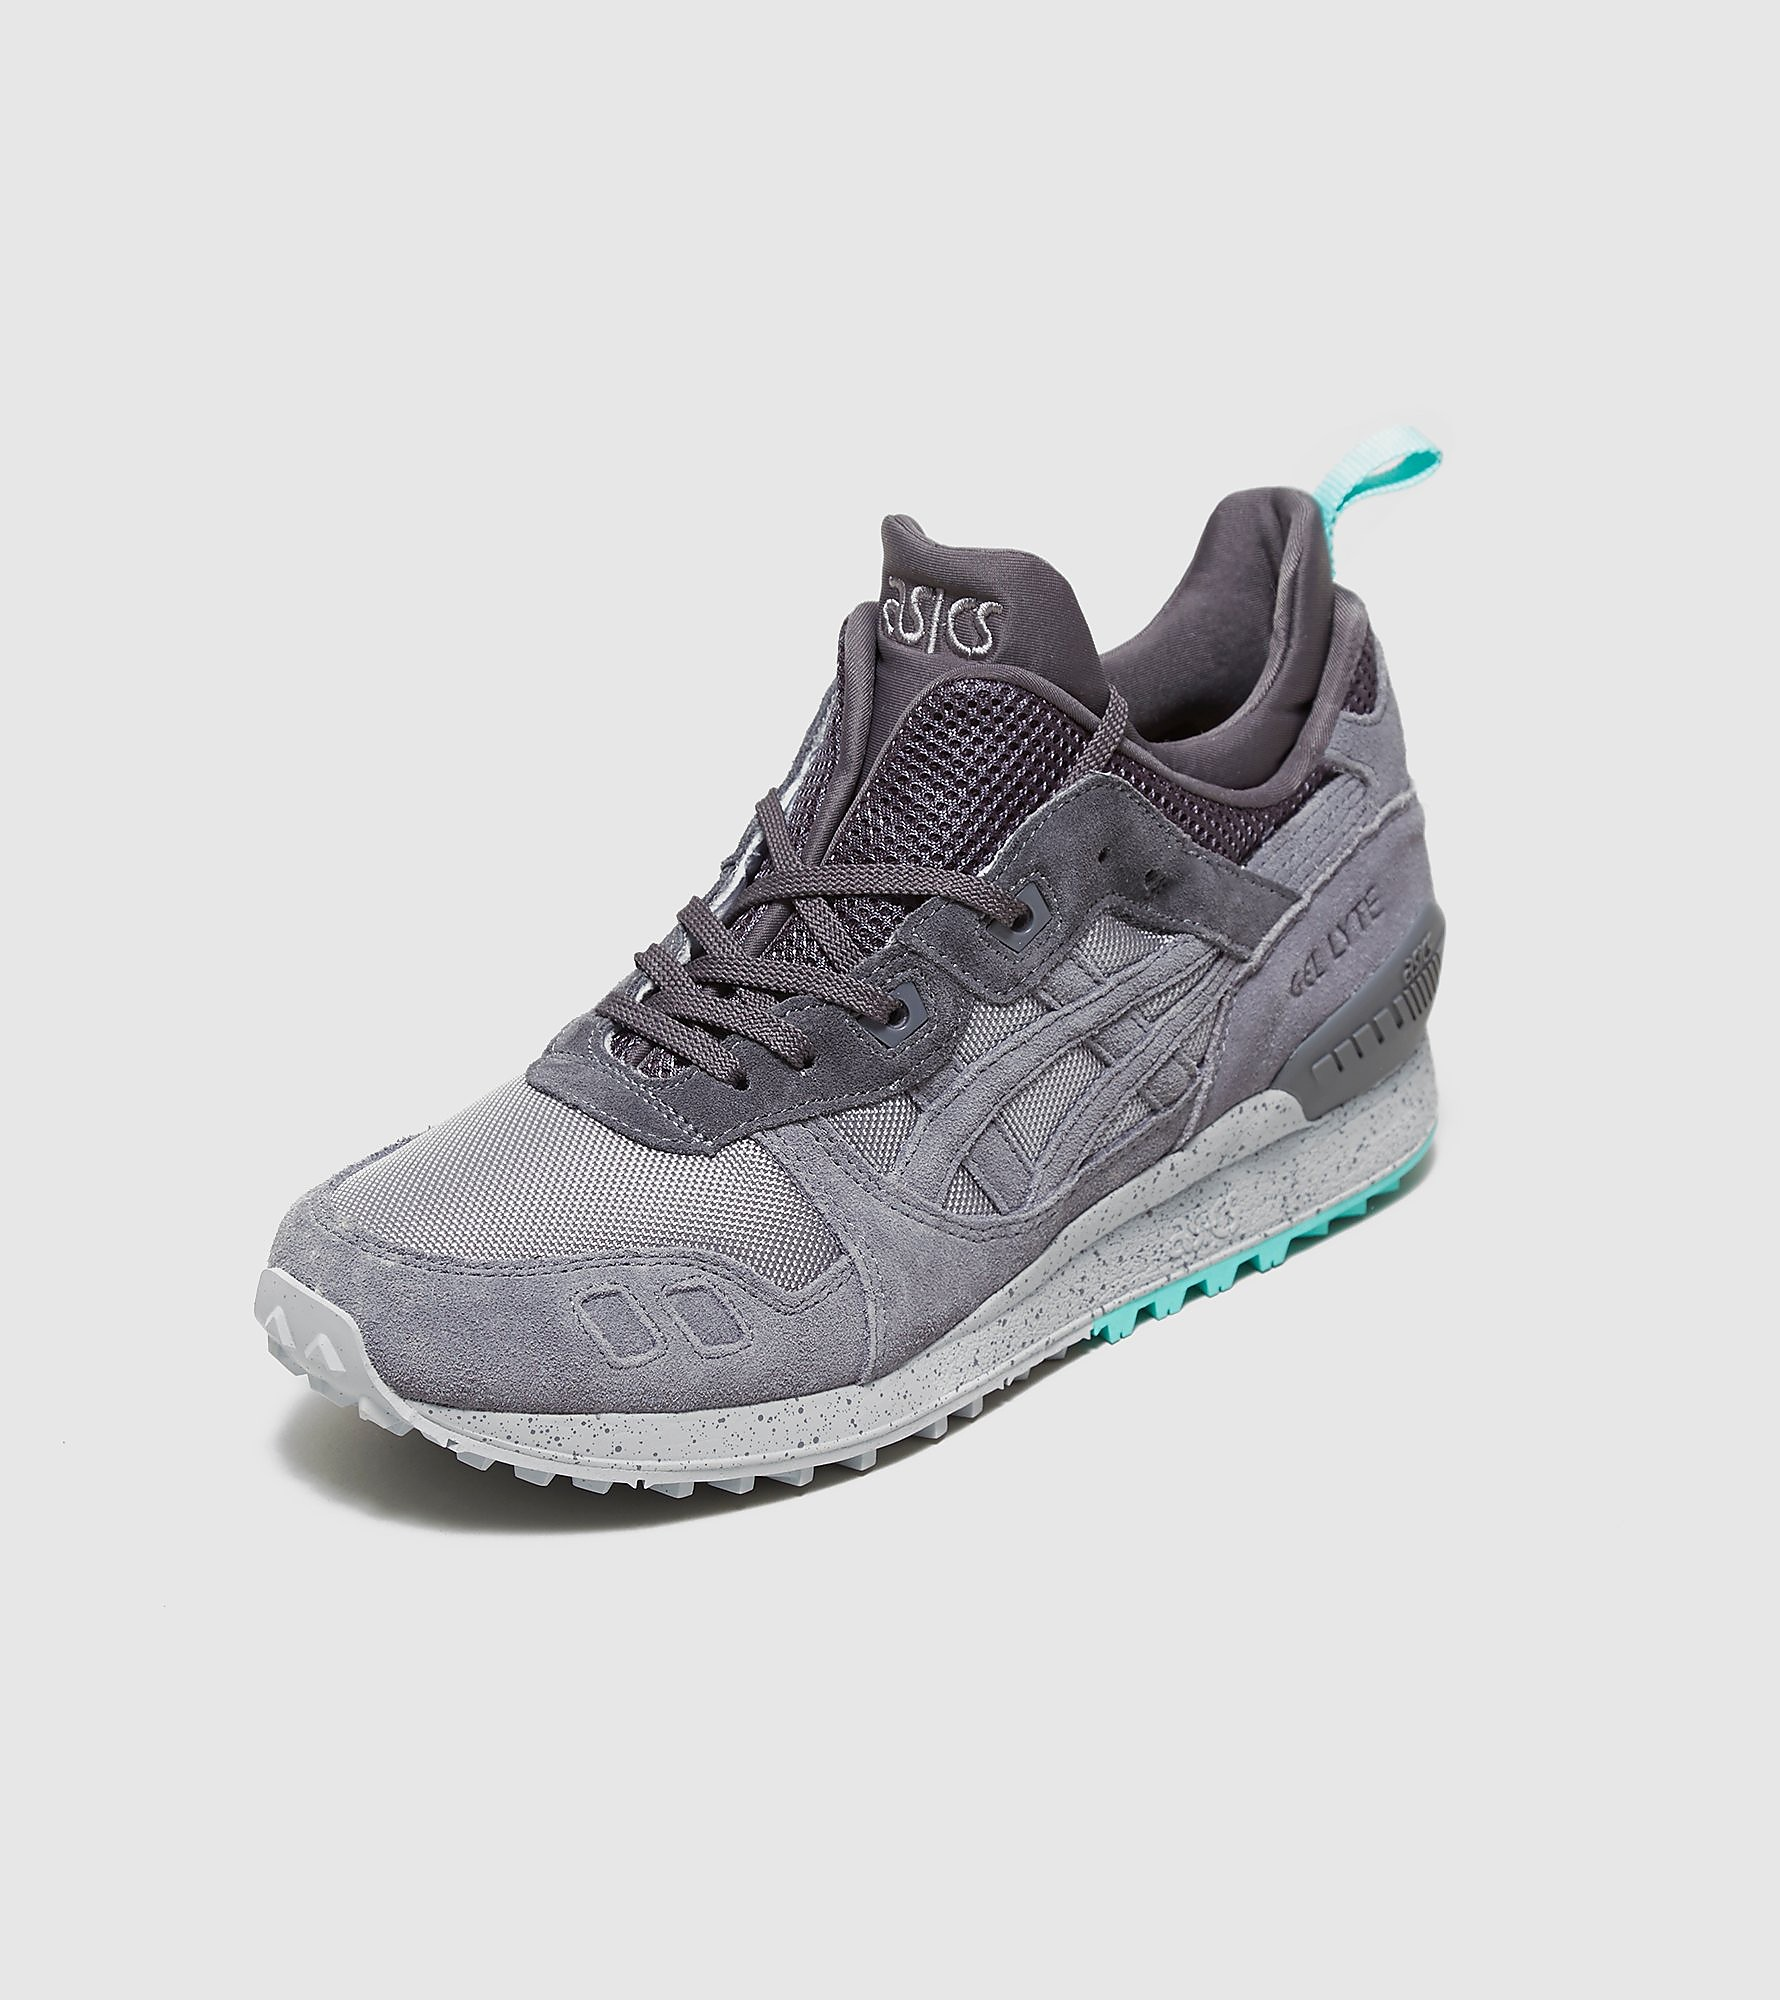 ASICS GEL-Lyte III Sneakerboot